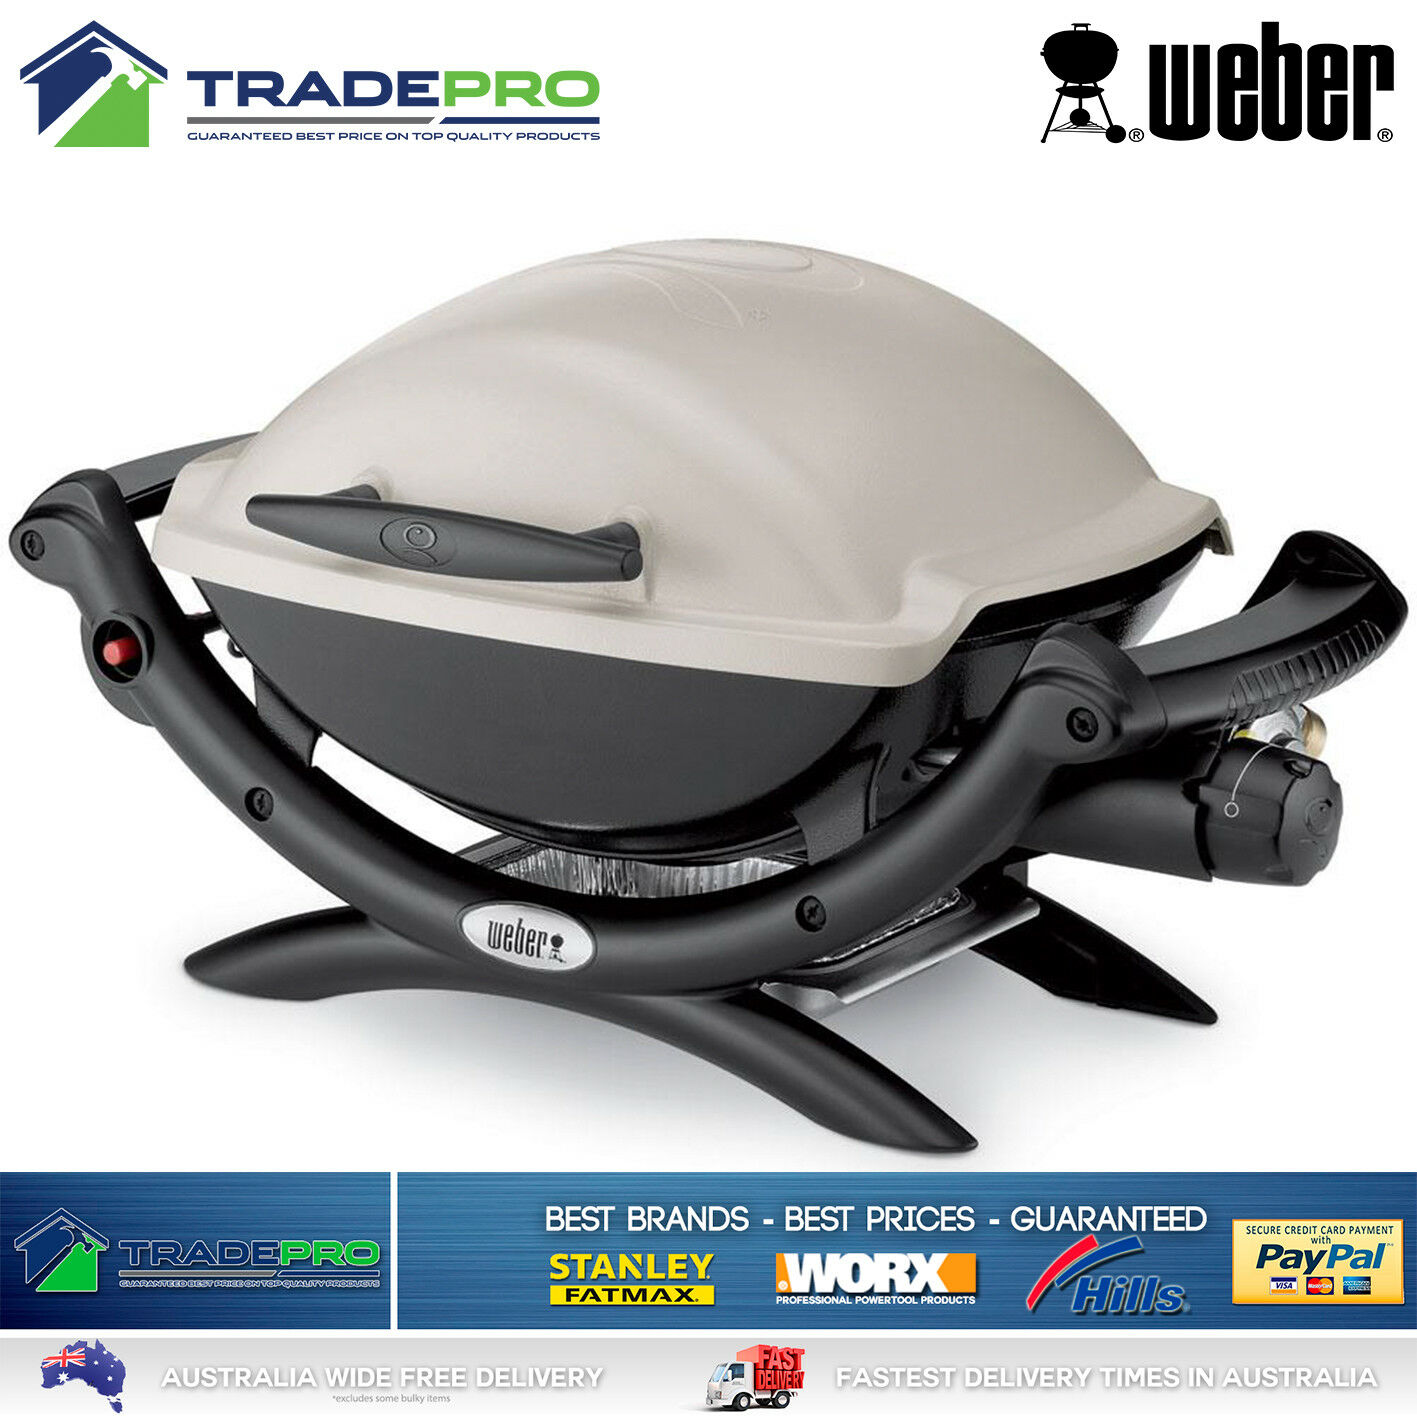 bbq weber q1000 portable gas barbecue grill stainless. Black Bedroom Furniture Sets. Home Design Ideas